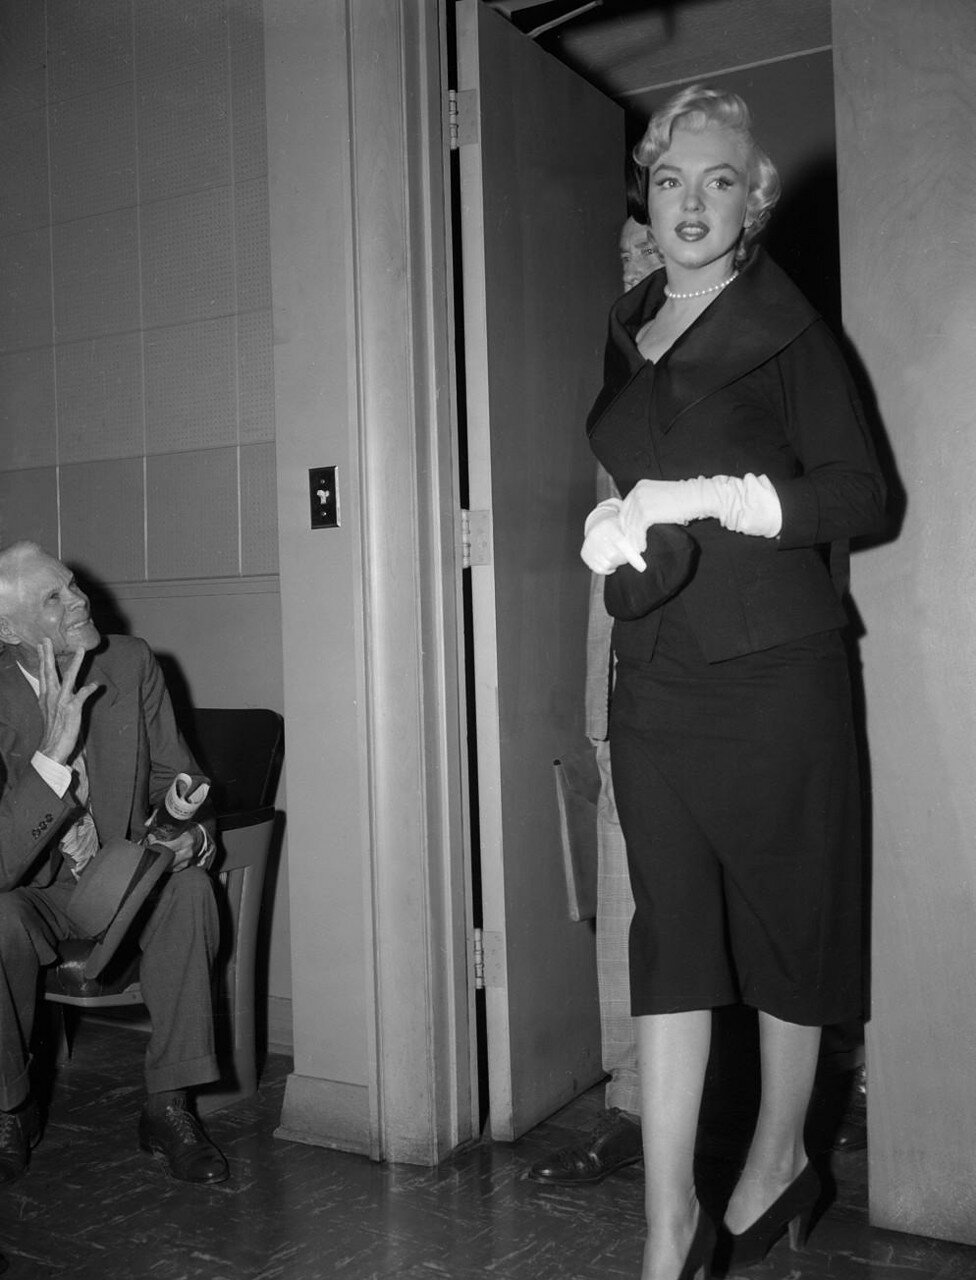 Marilyn Monroe Walking into Court